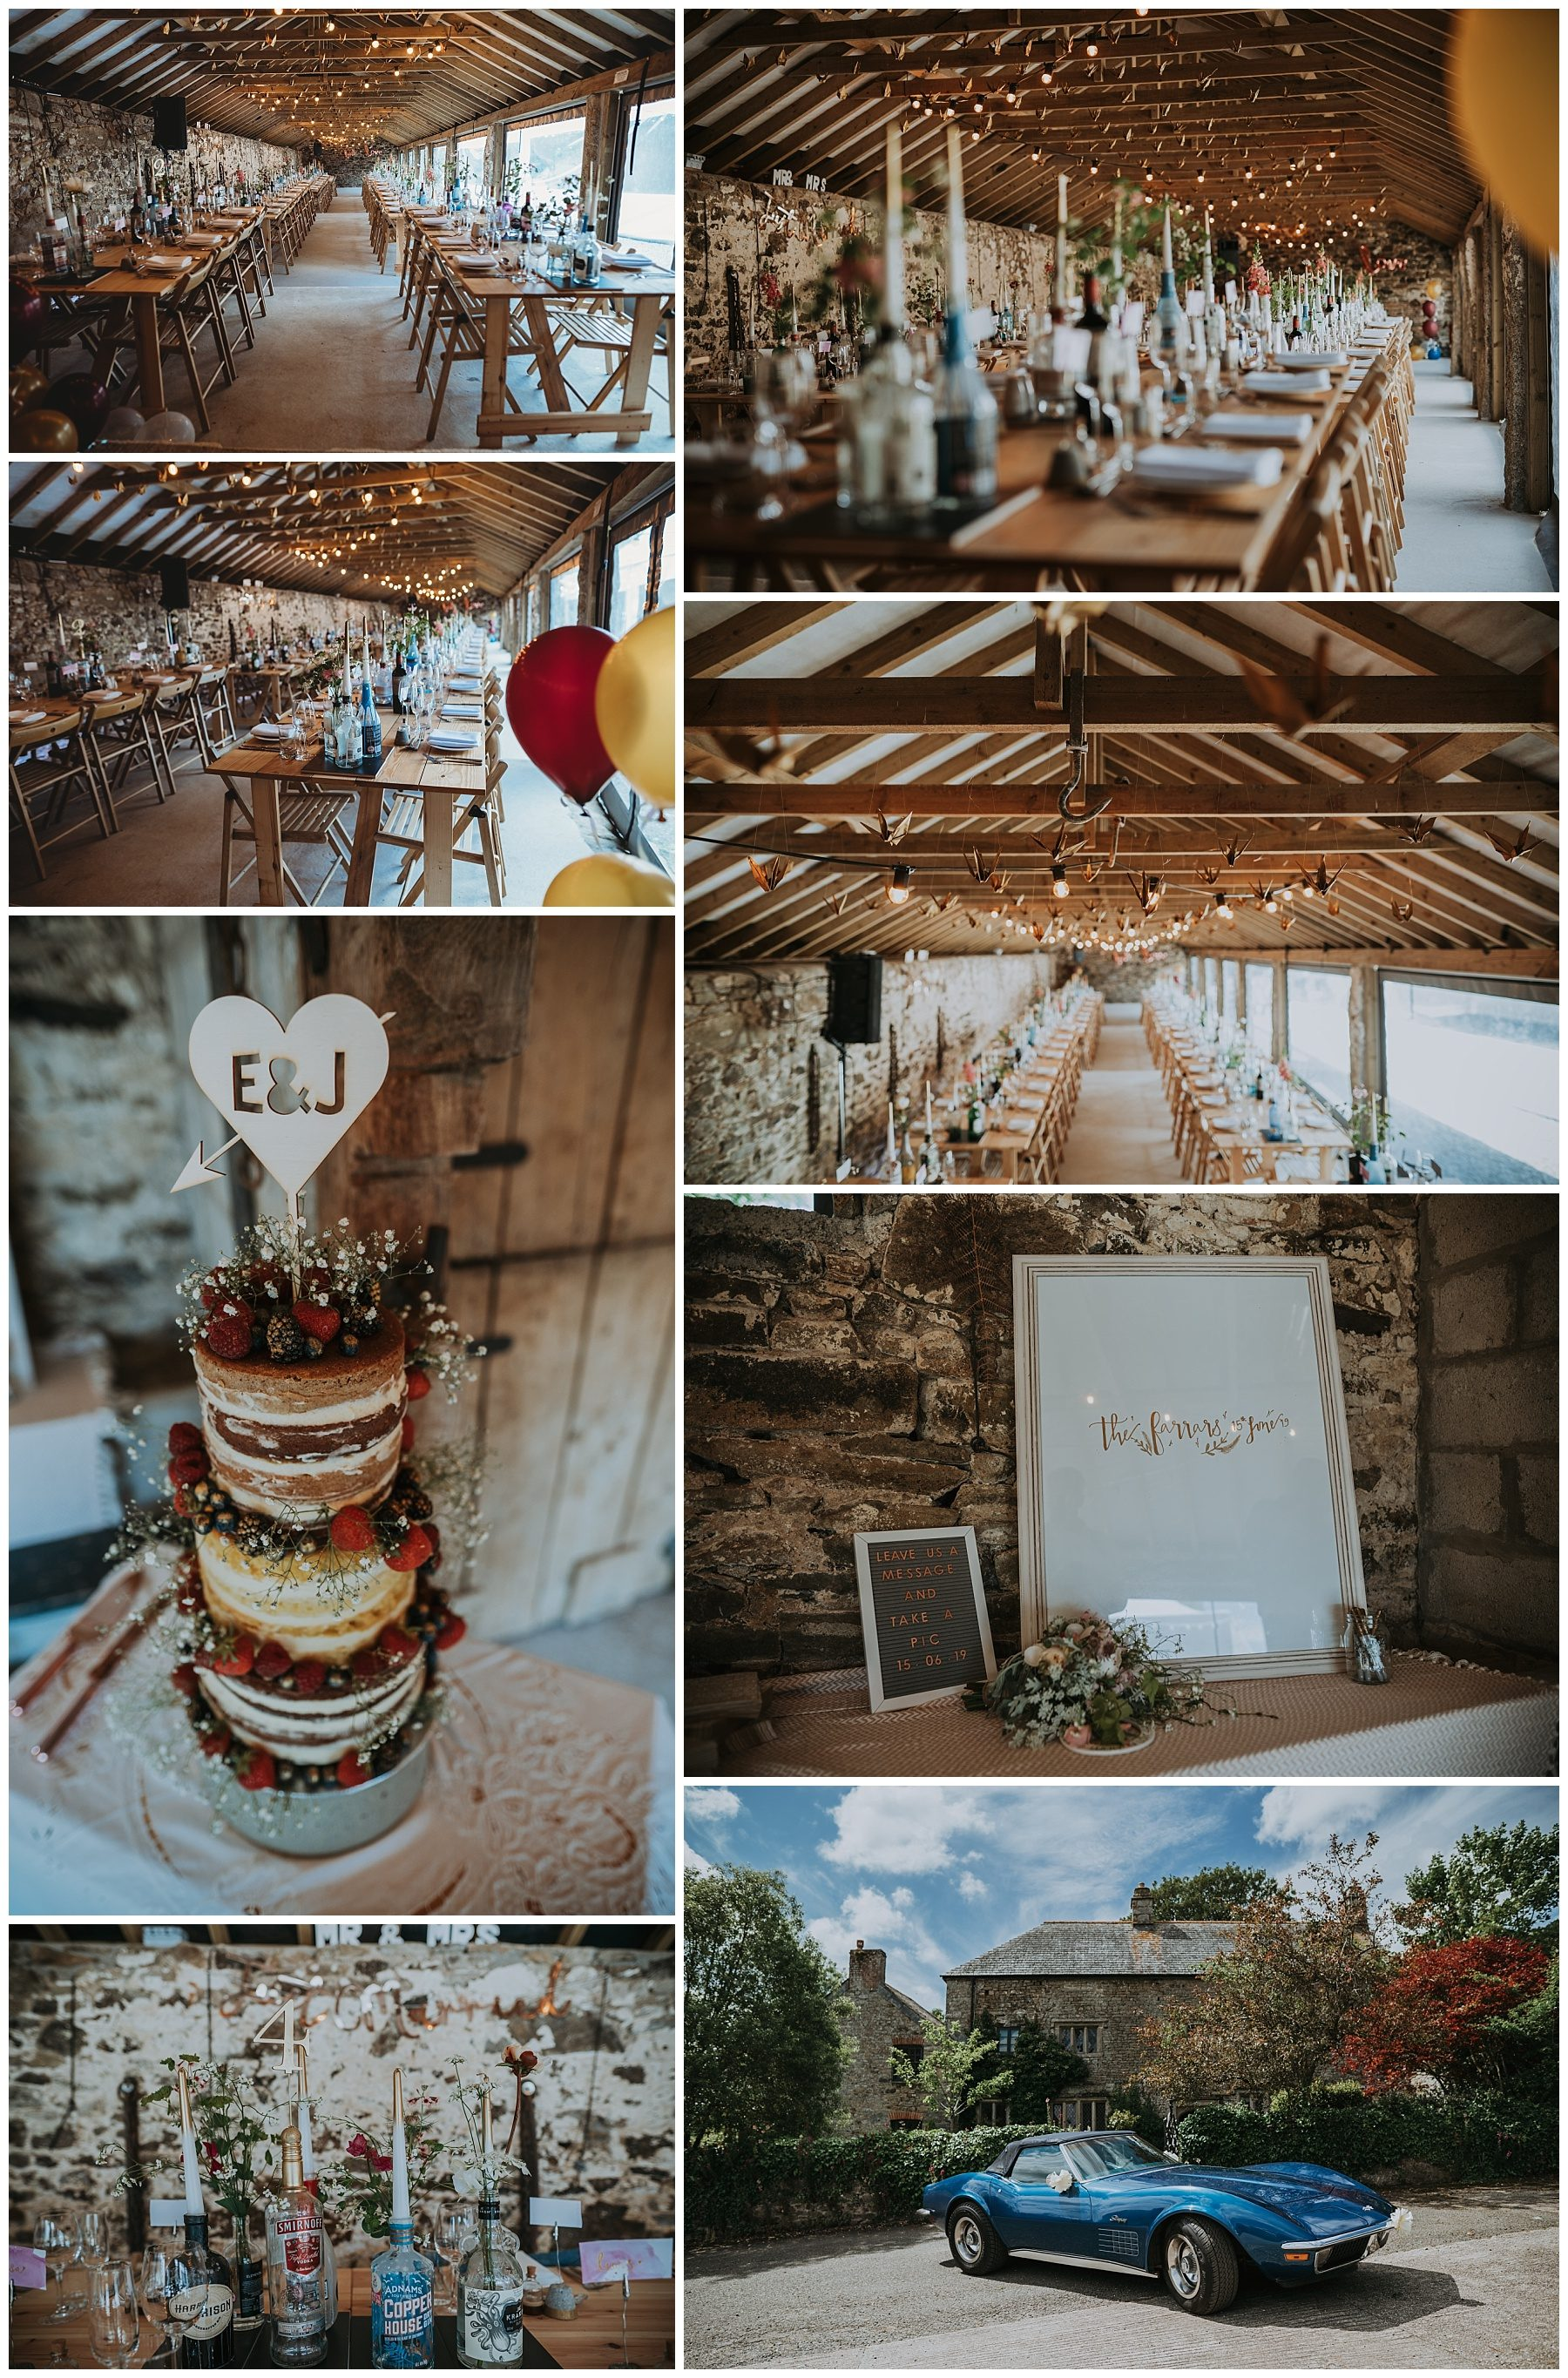 Pengenna Manor cornwall internal wedding table photography